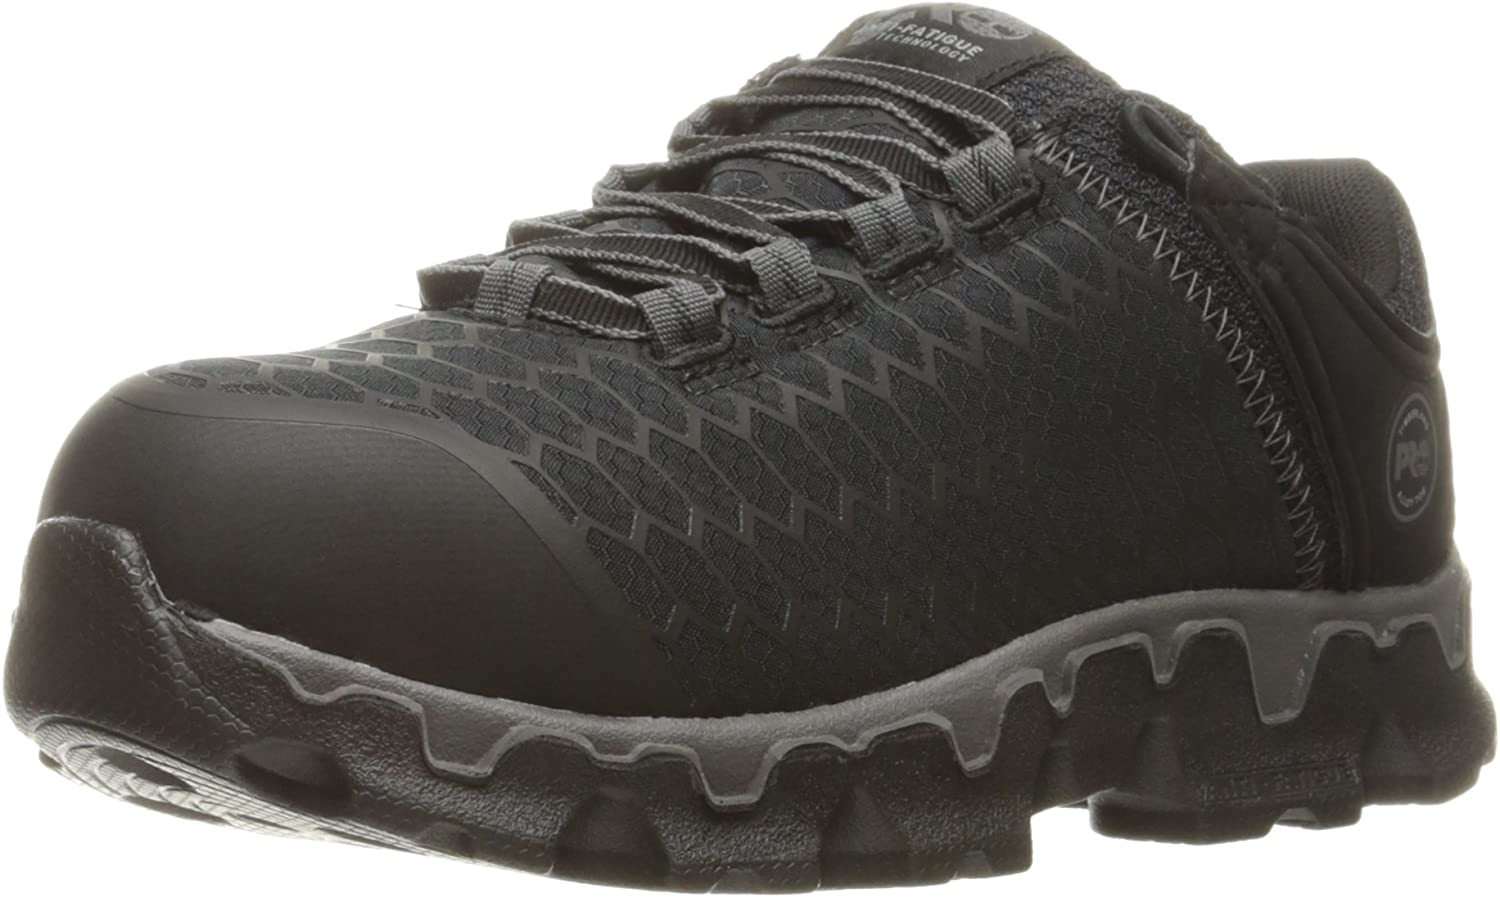 Timberland PRO Women's Powertrain Sport Alloy Toe SD+ Industrial and Construction Shoe: Shoes